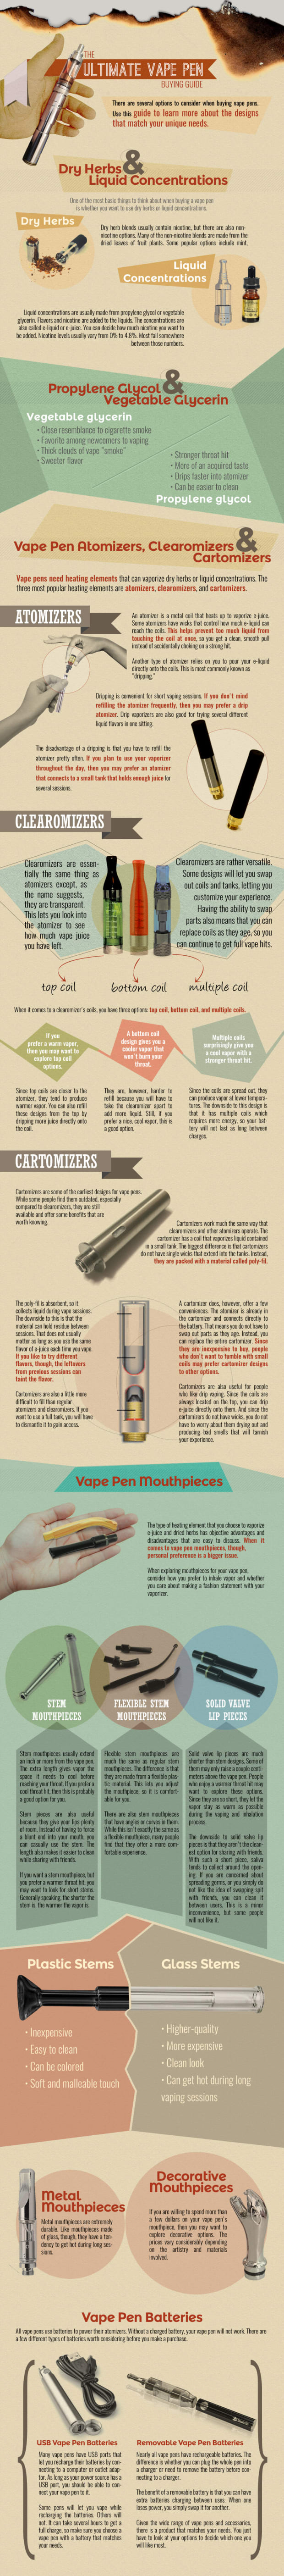 Looking To Buy A Vape Pen? Check Out This Buyers Guide For Some